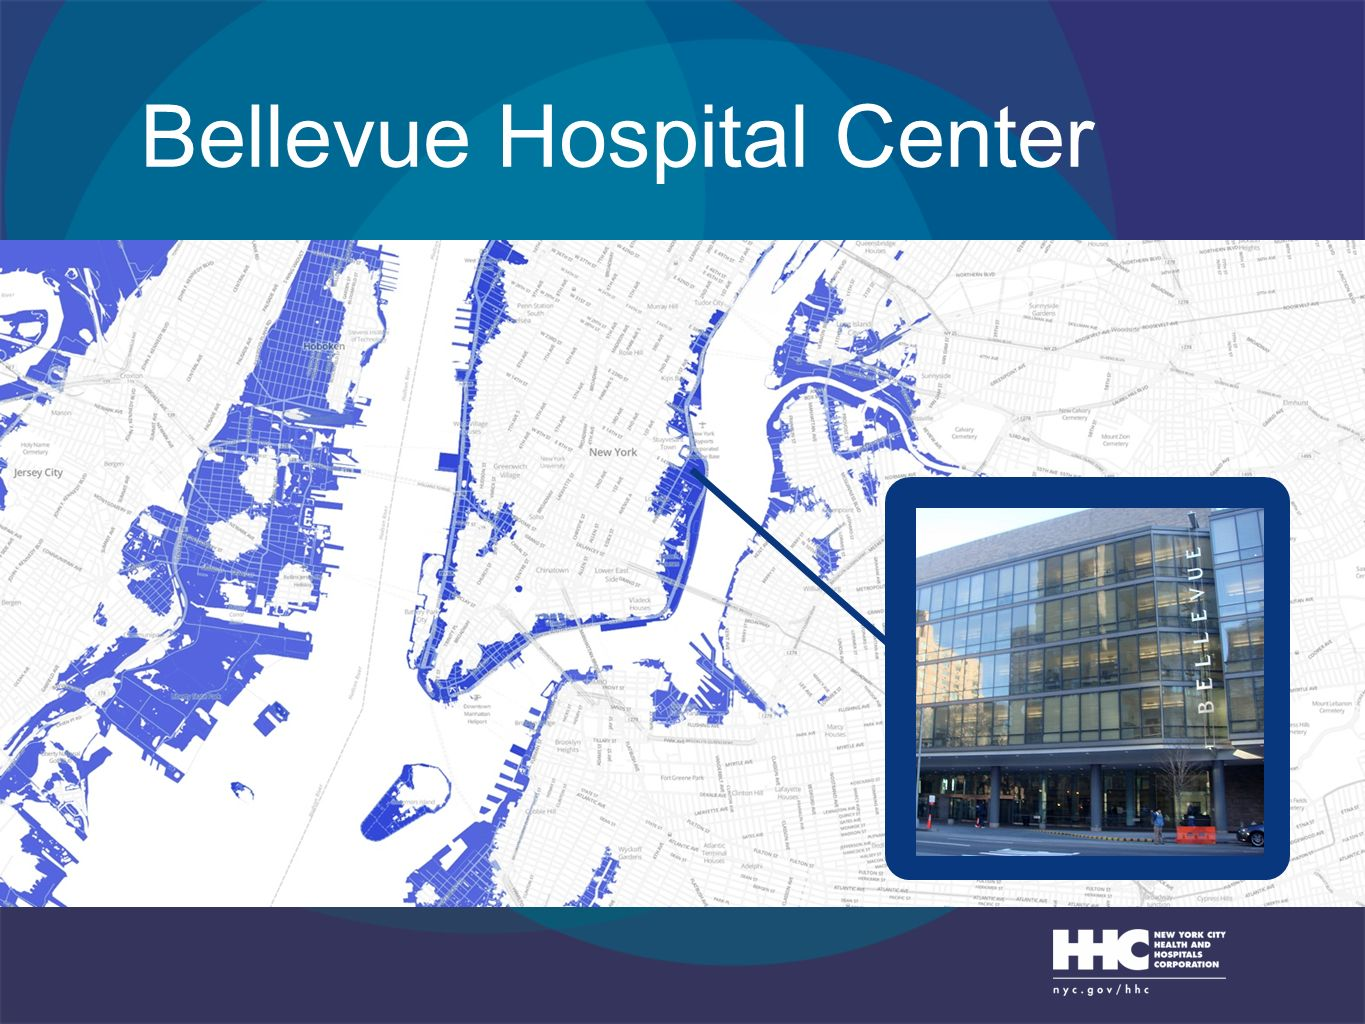 Bellevue Hospital Center